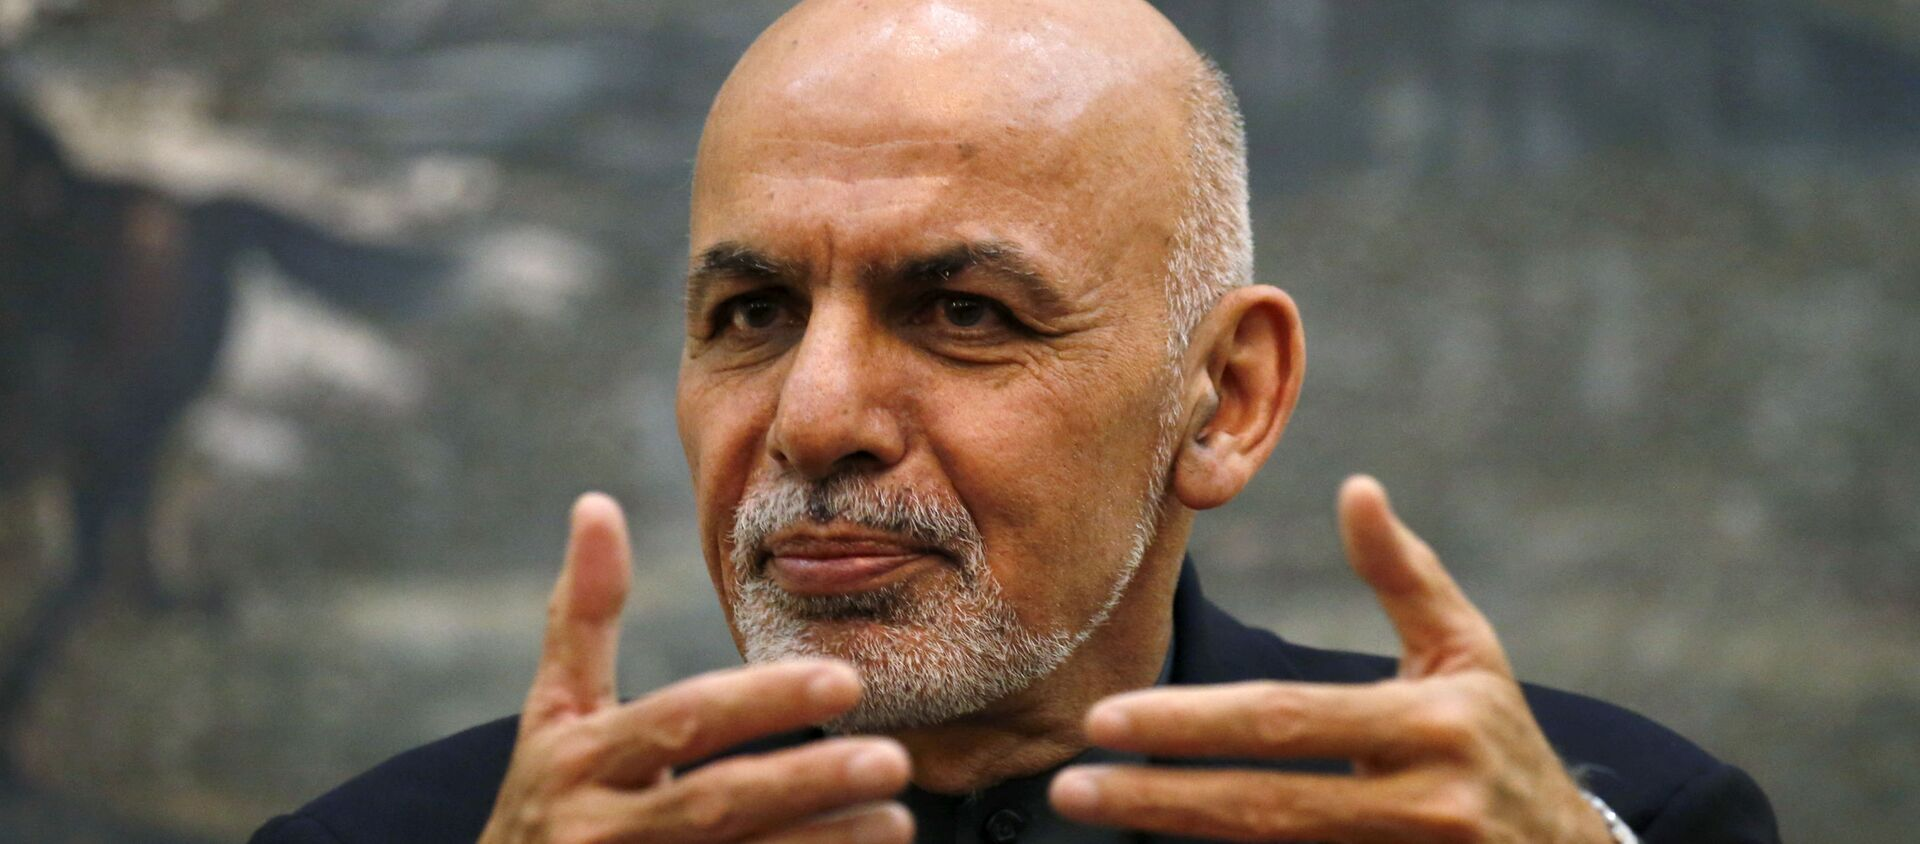 FILE PHOTO: Afghanistan's President Ashraf Ghani speaks during a news conference in Kabul, Afghanistan December 7, 2015. Ghani confirmed on Monday that he would travel to Pakistan for a regional conference on Afghanistan, in a sign of fresh efforts to reduce tension between the two neighbouring countries.  REUTERS/Stringer/File Photo - Sputnik International, 1920